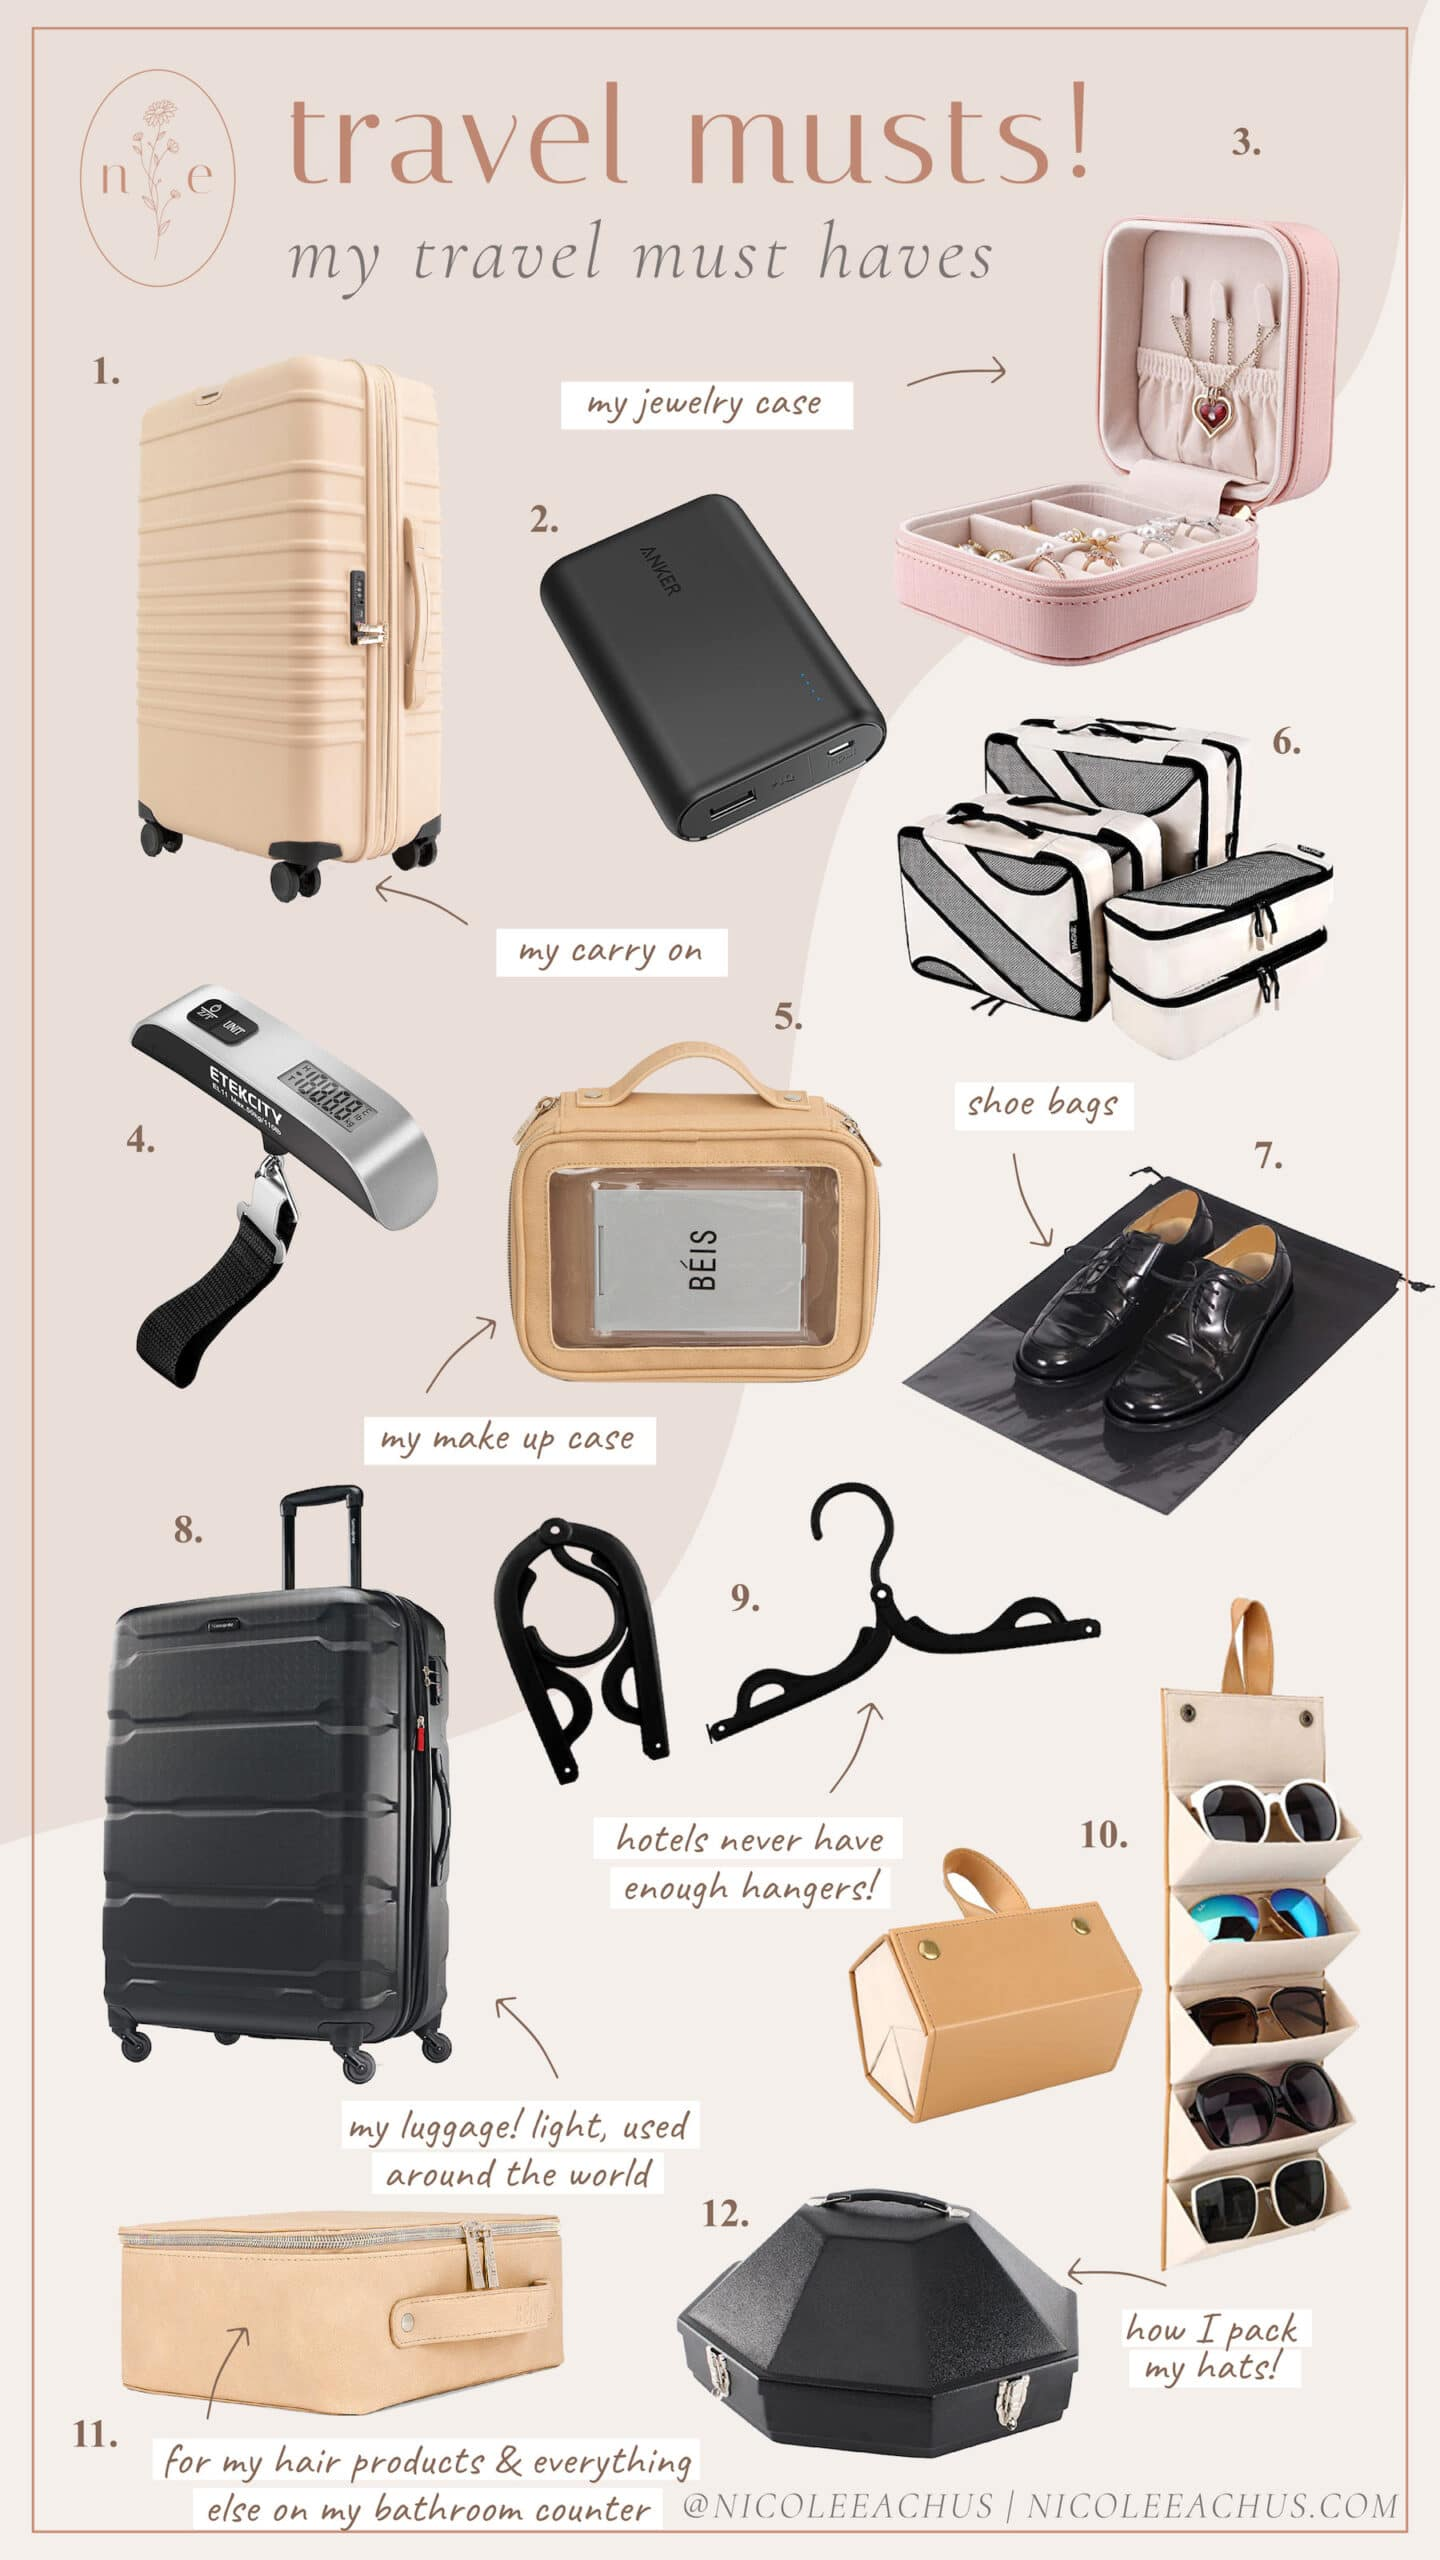 my travel must haves